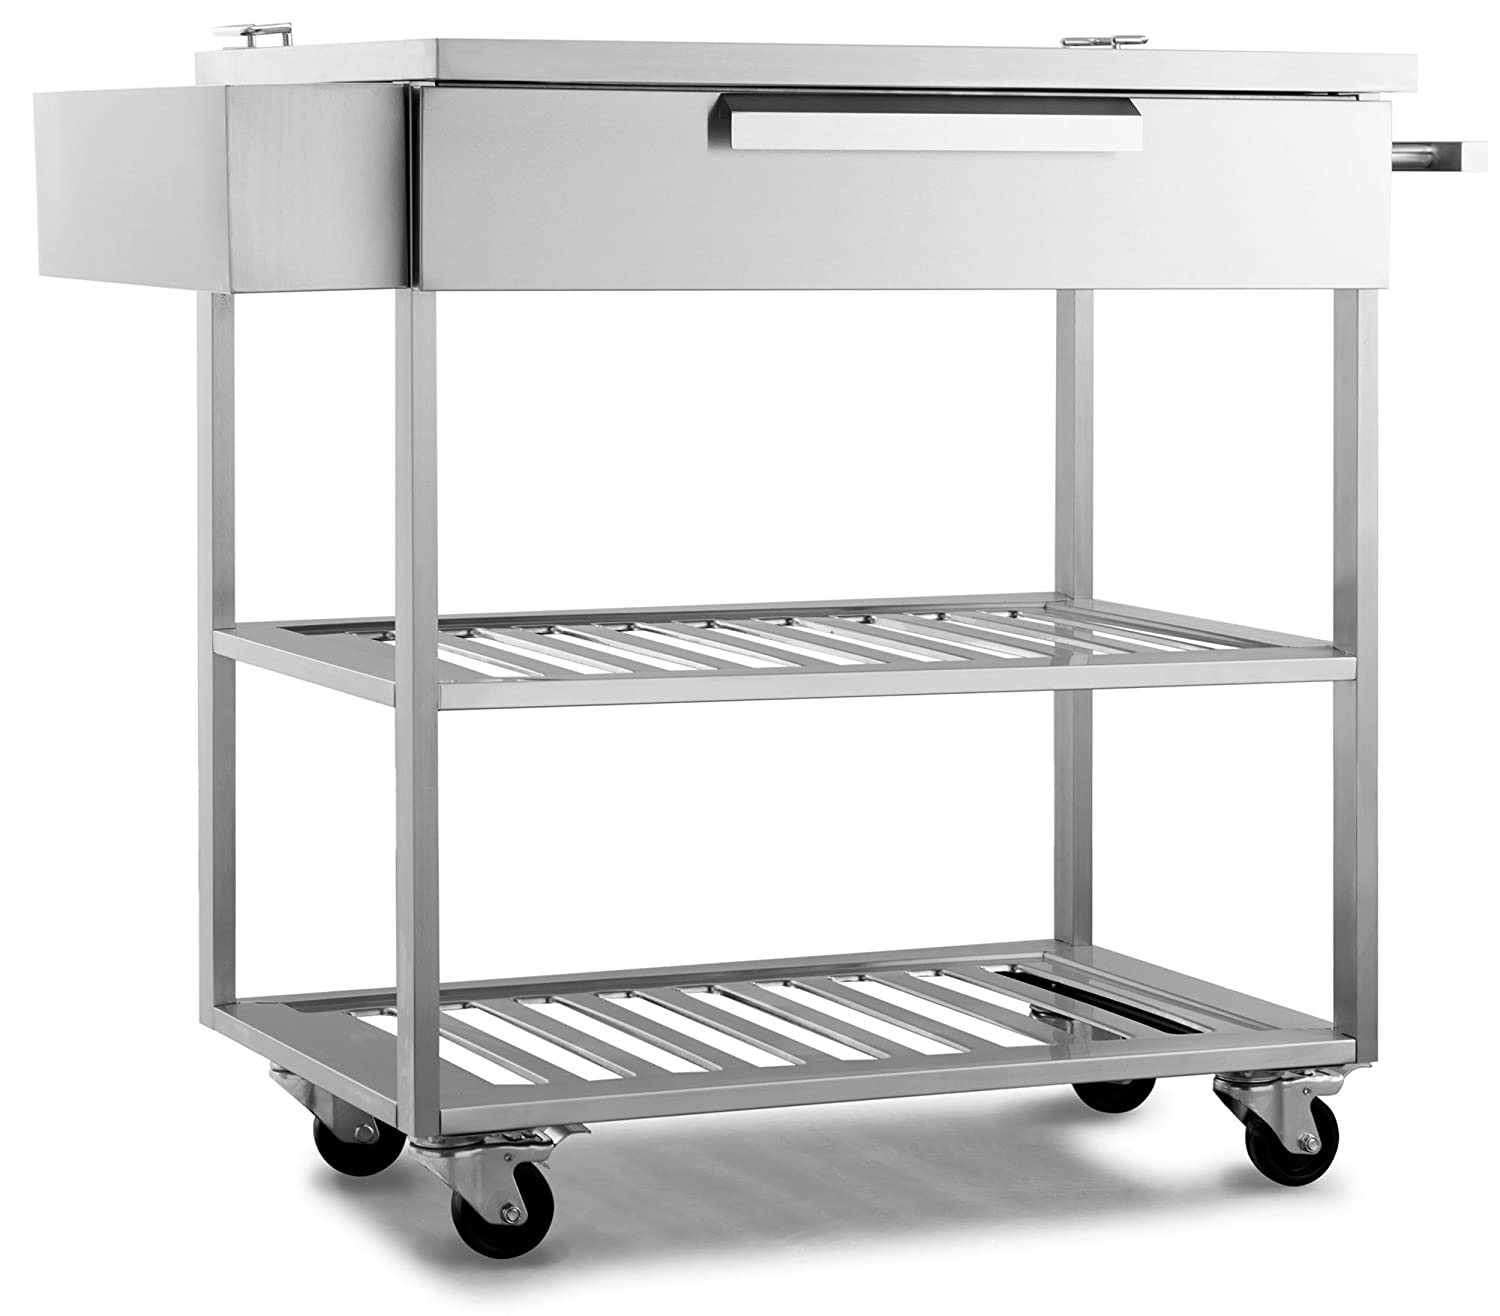 NewAge Products Inc. 65007 Outdoor Kitchen Storage, Stainless Steel